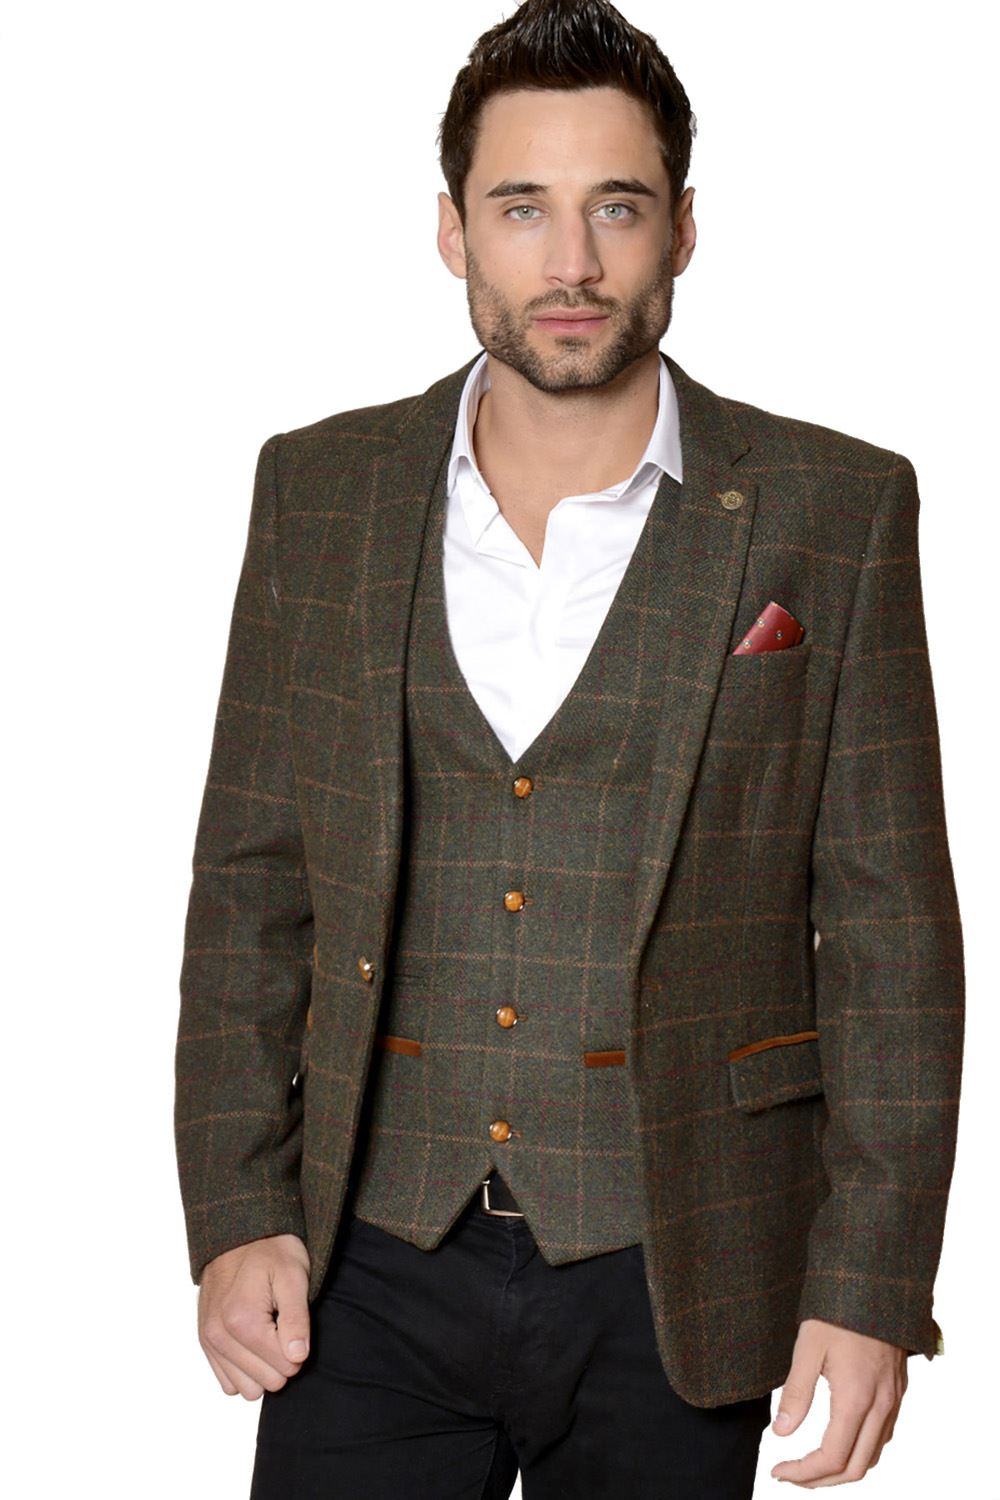 See our range of Mens Tweed Jackets for sale. Modern slim-fit tweed jackets, classic Harris Tweed blazers, stylish checked & herringbone jackets & more. Buy a mens tweed jacket, for effortless style that works as well with jeans as it does in a three piece suit.